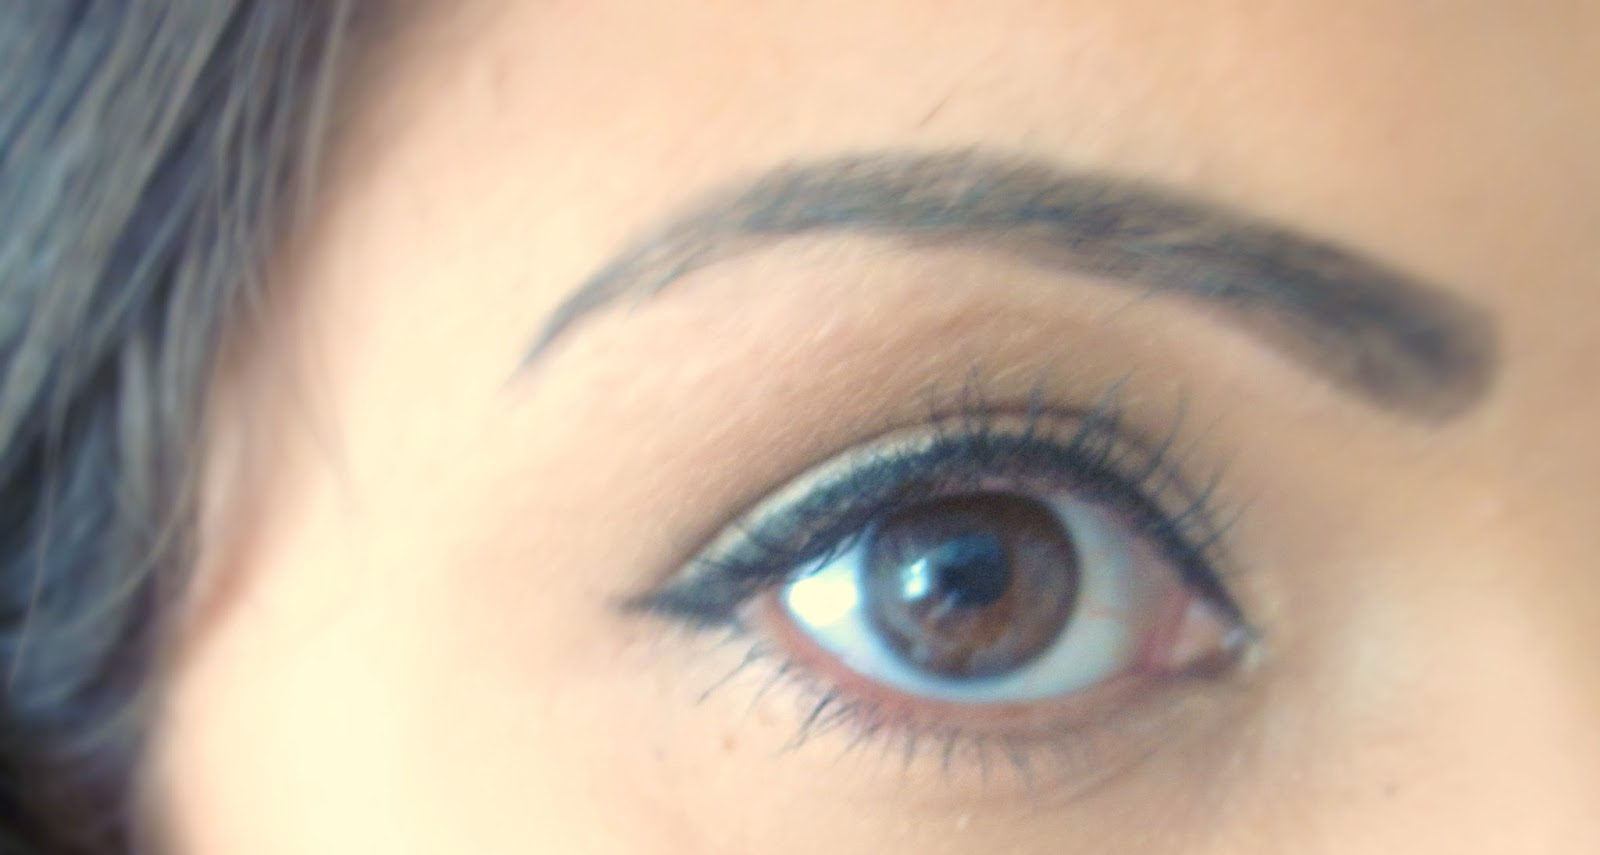 Winged eyeliner using Benefit They're Real Push Up Liner